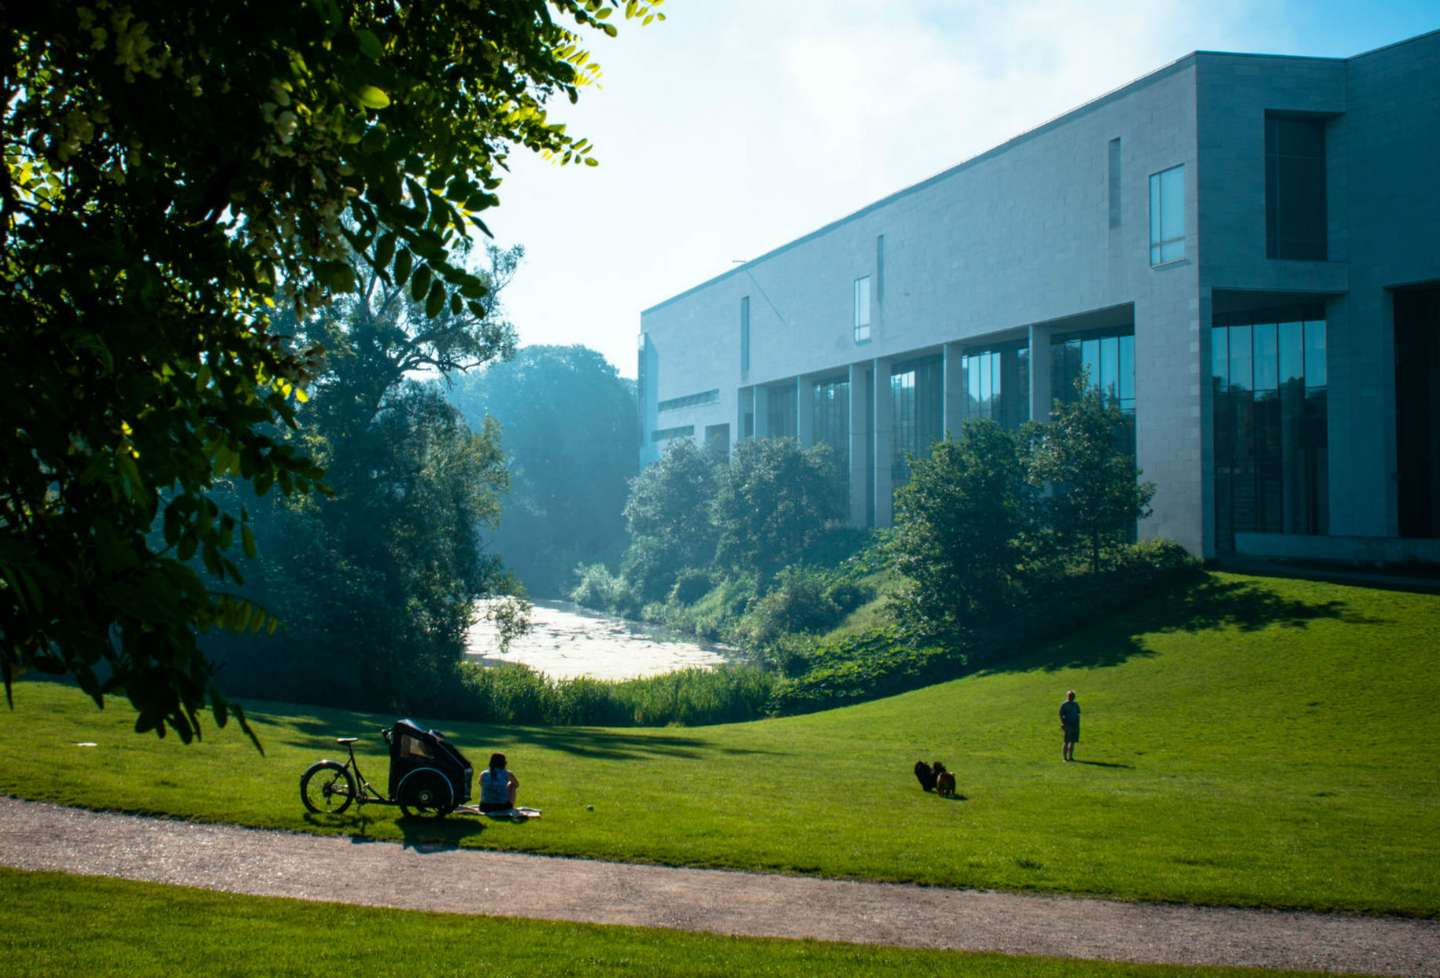 The Østre Anlæg park with a view upon the National Gallery of Denmark